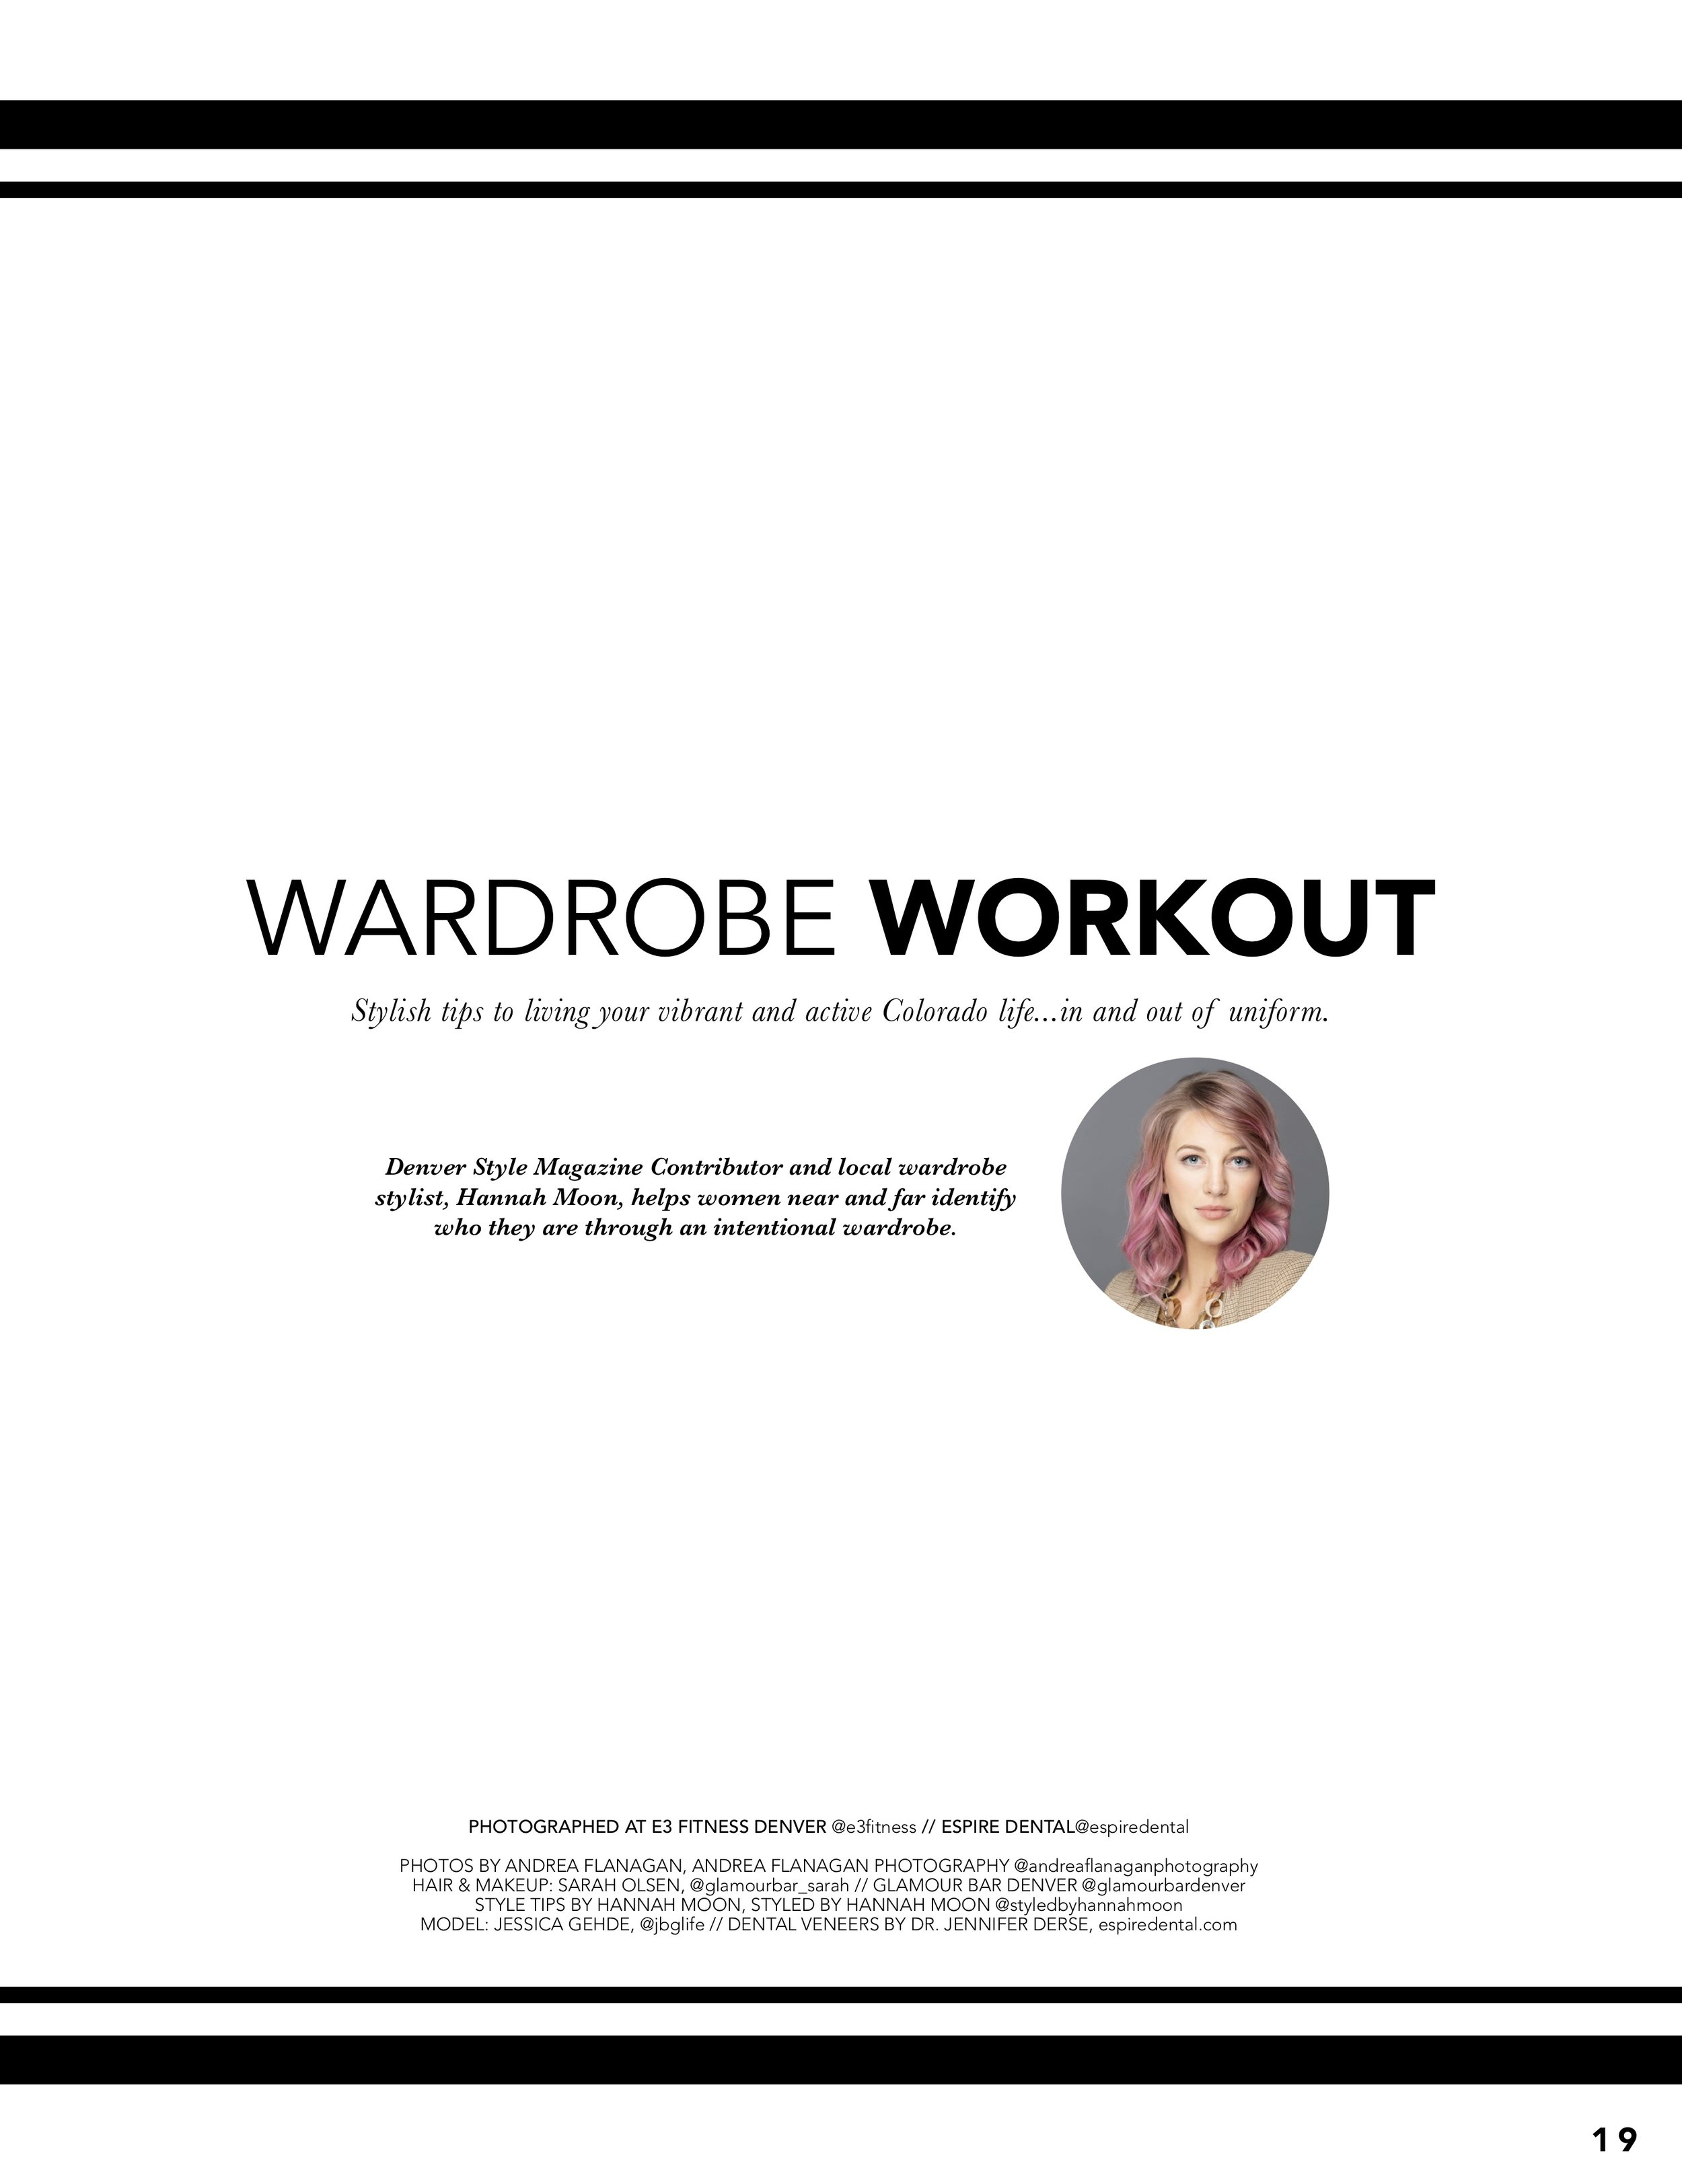 WardrobeWorkout1.jpg